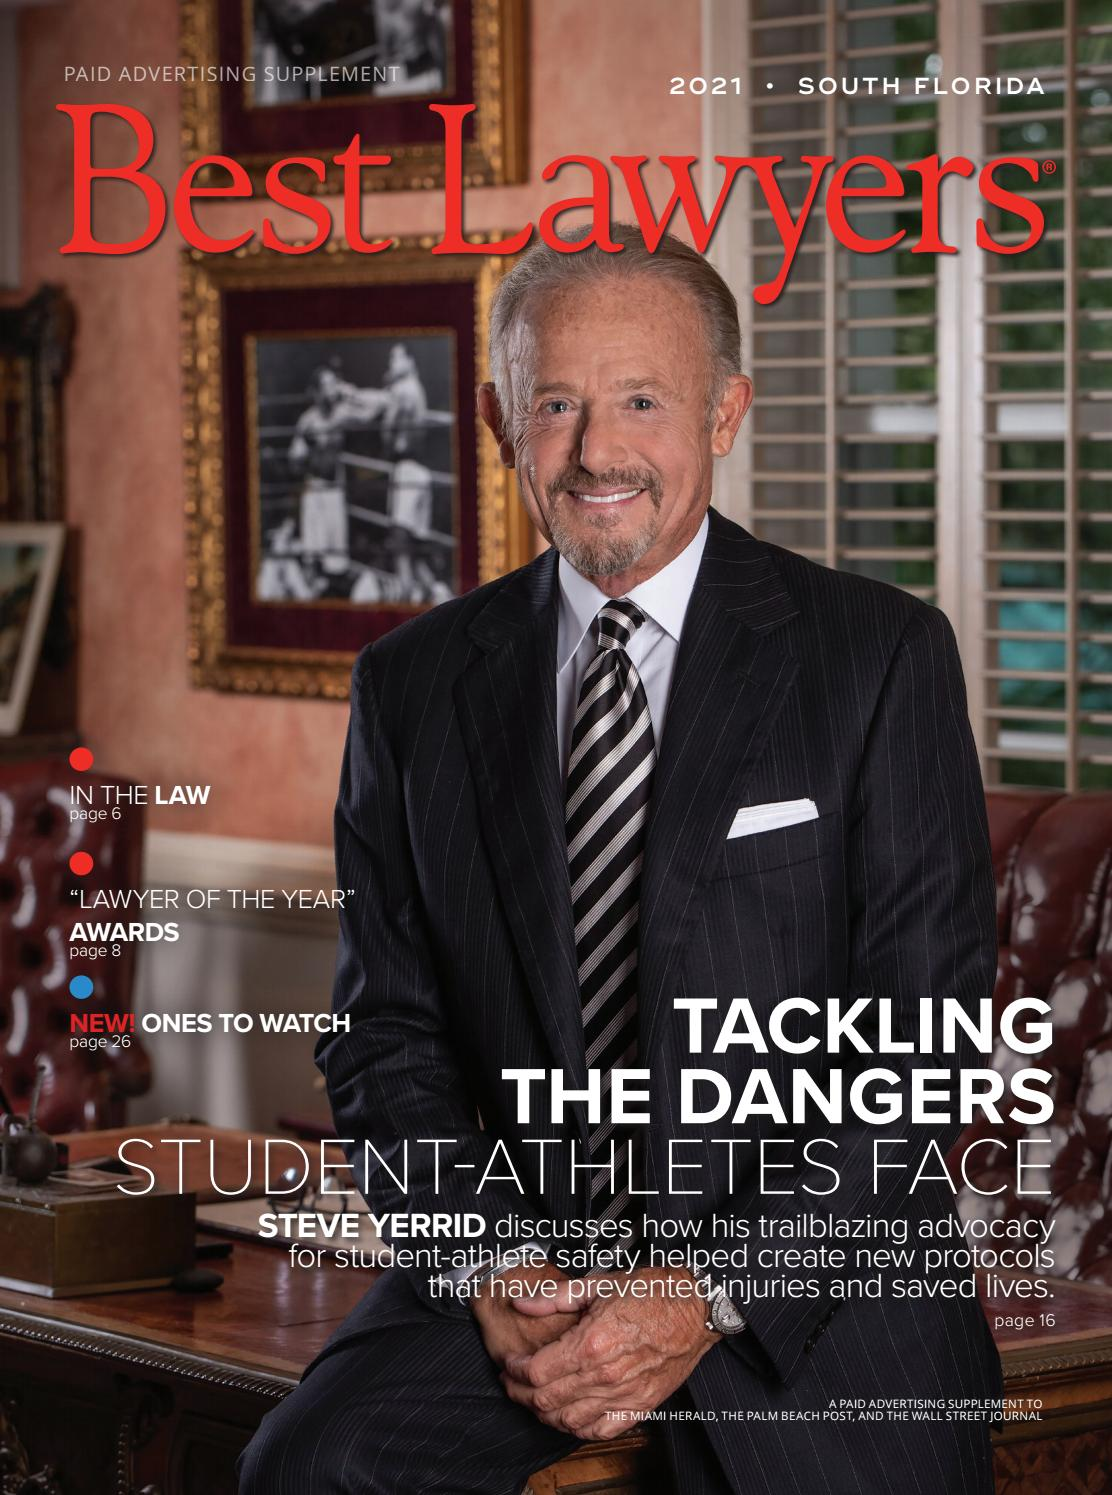 South Florida S Best Lawyers 2021 By Best Lawyers Issuu